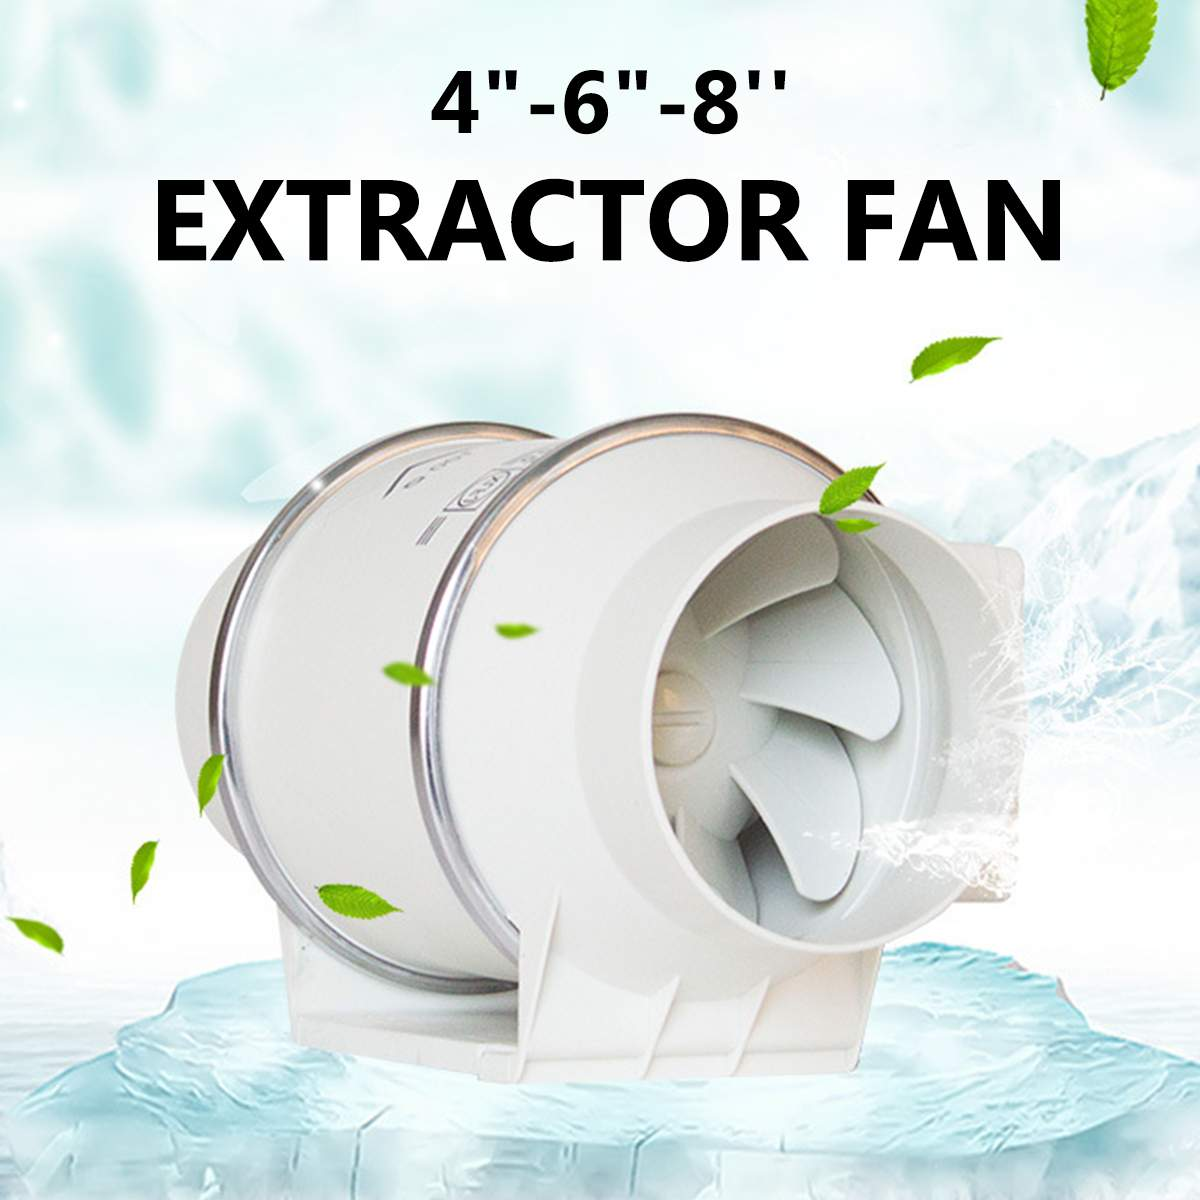 4-6-8-220v-exhaust-fan-home-silent-inline-pipe-duct-fan-bathroom-extractor-ventilation-kitchen-toilet-wall-air-clean-ventilator